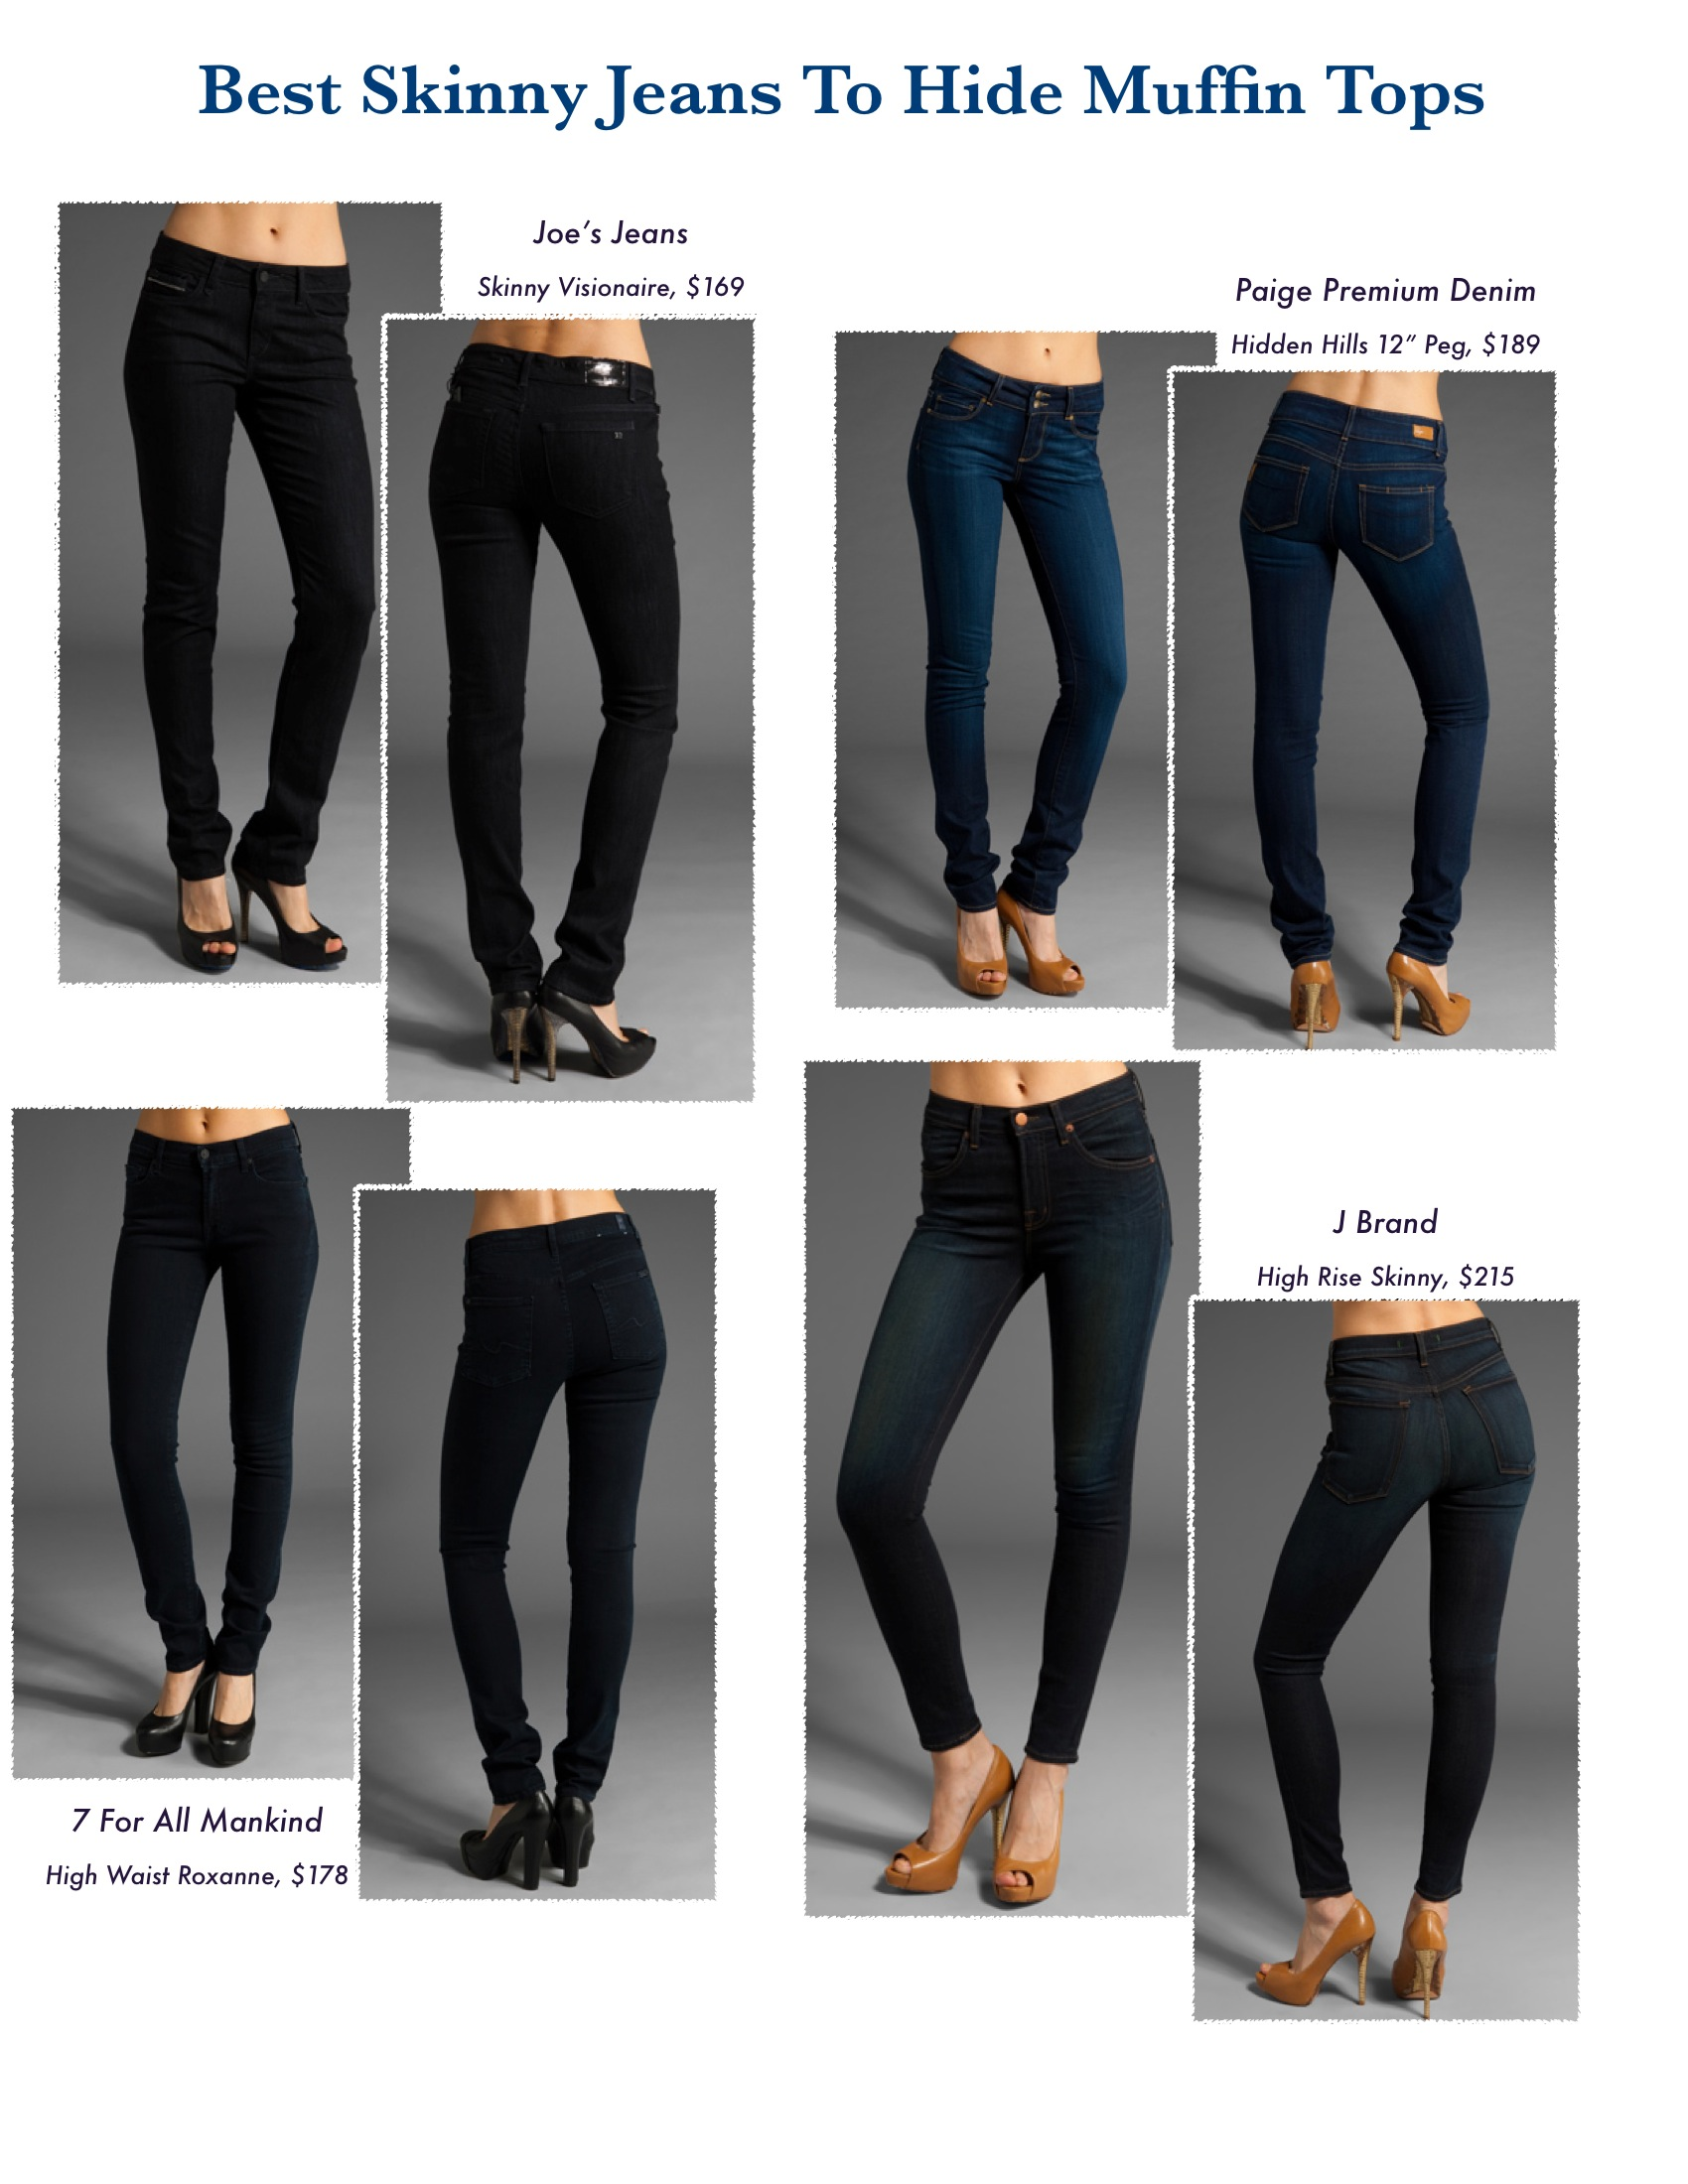 The Skinny On Skinny Jeans The Best Styles For Moms From